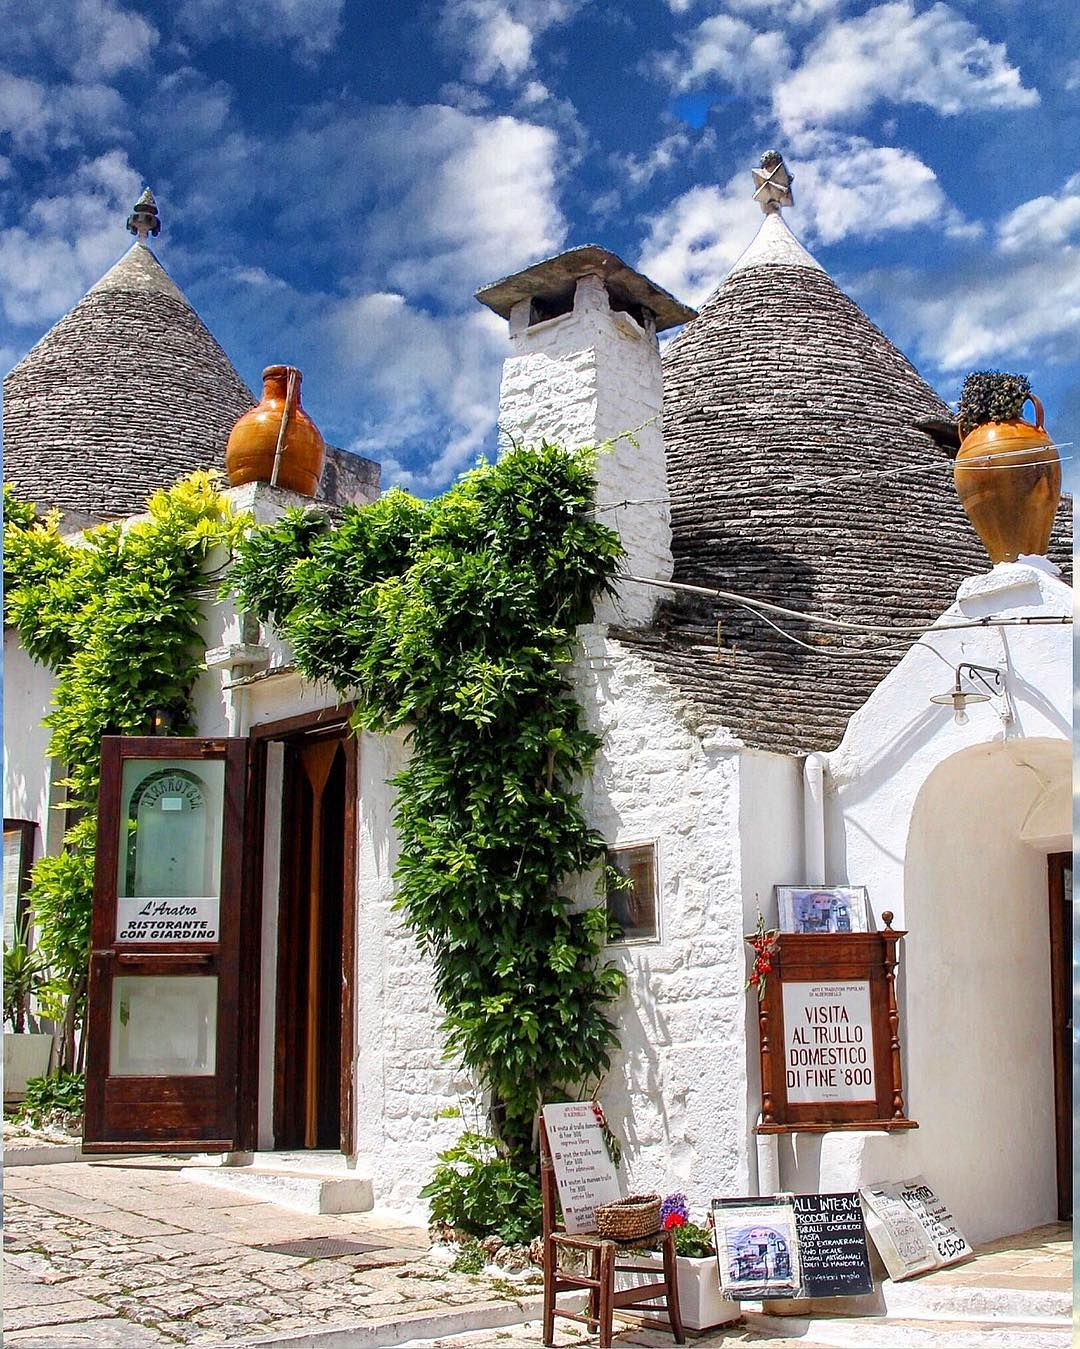 Ristoranti Alberobello Alberobello Another Day Another Trulli One Truly Amazing